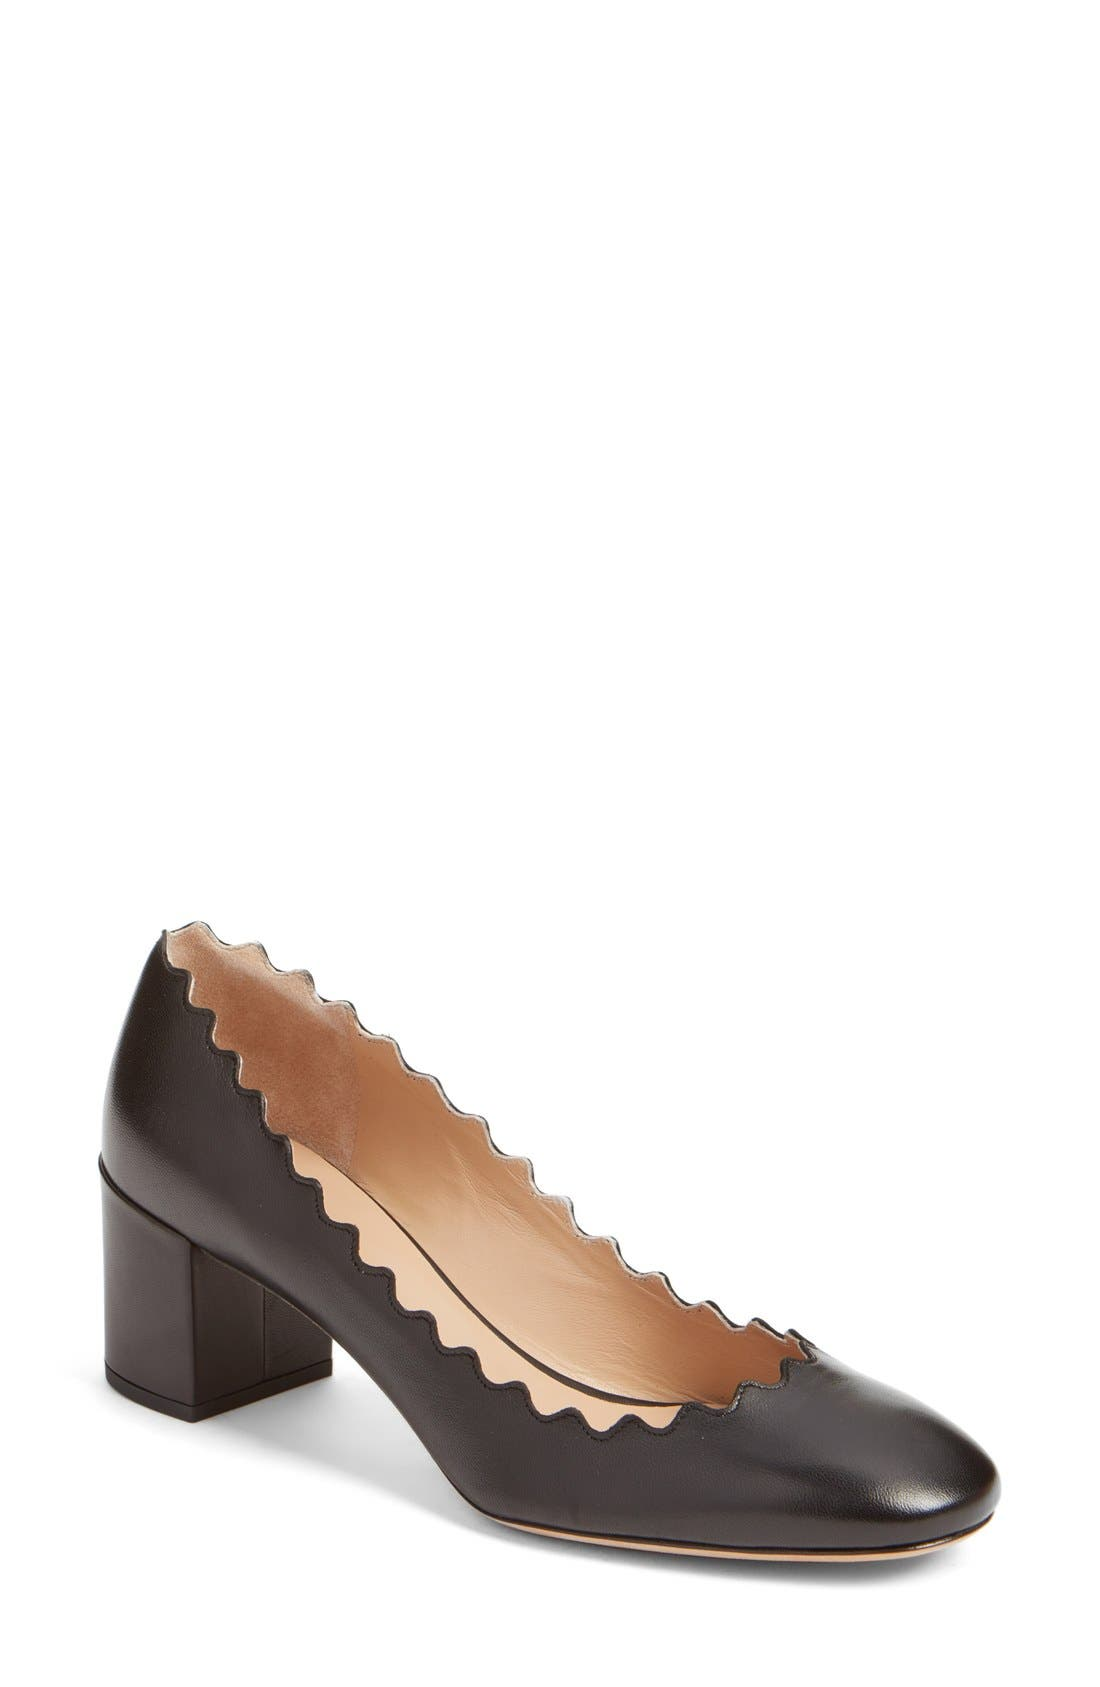 Lauren Scalloped Pump,                             Main thumbnail 1, color,                             BLACK